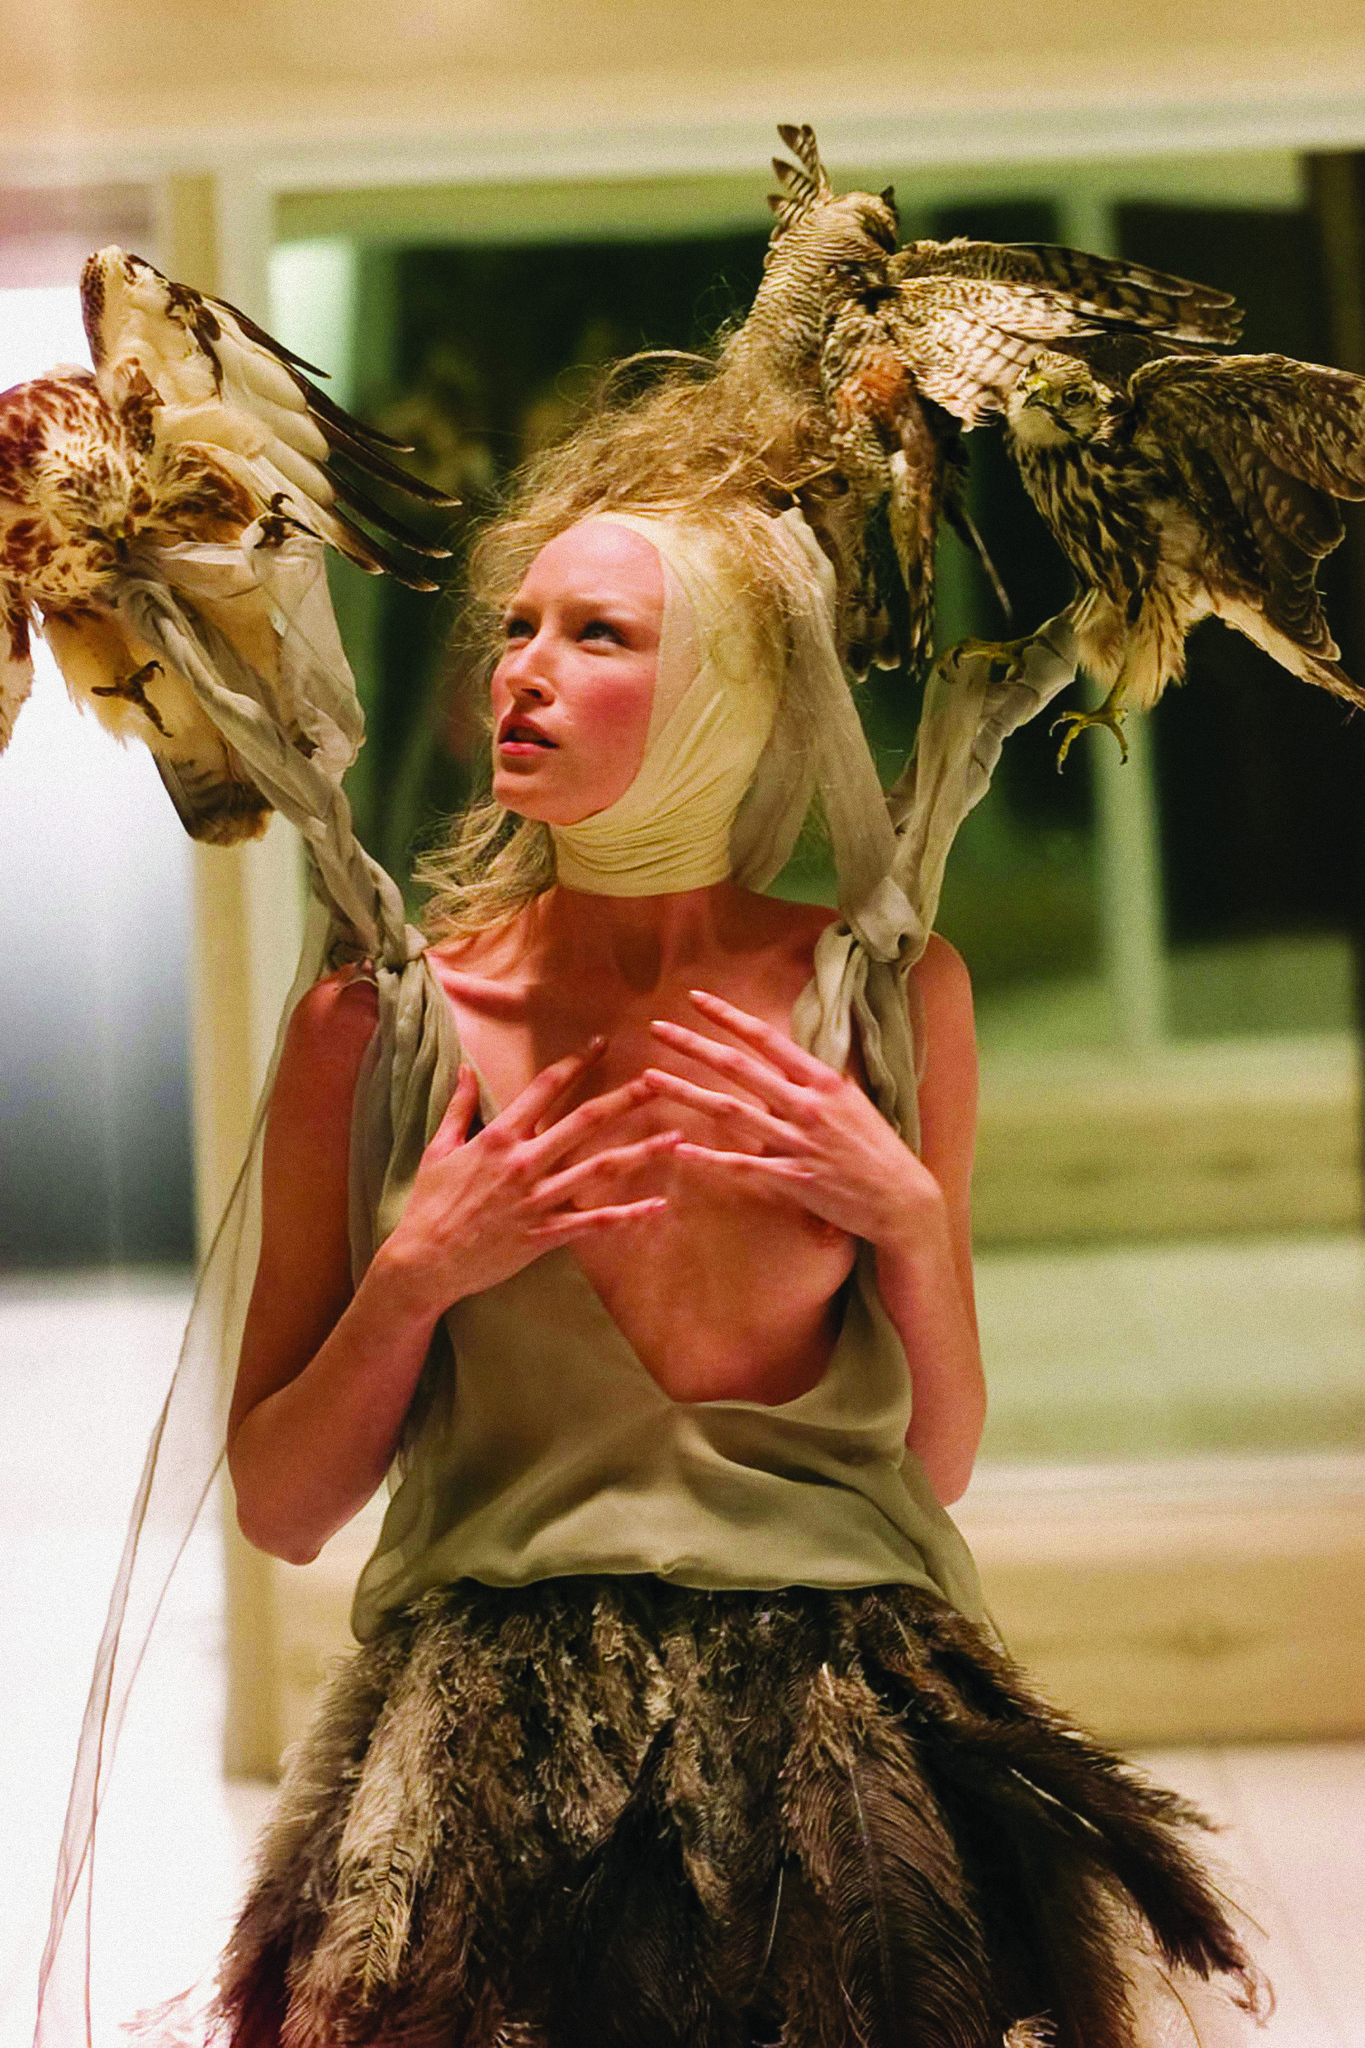 Model at the Spring 2001 Alexander McQueen fashion show in London.